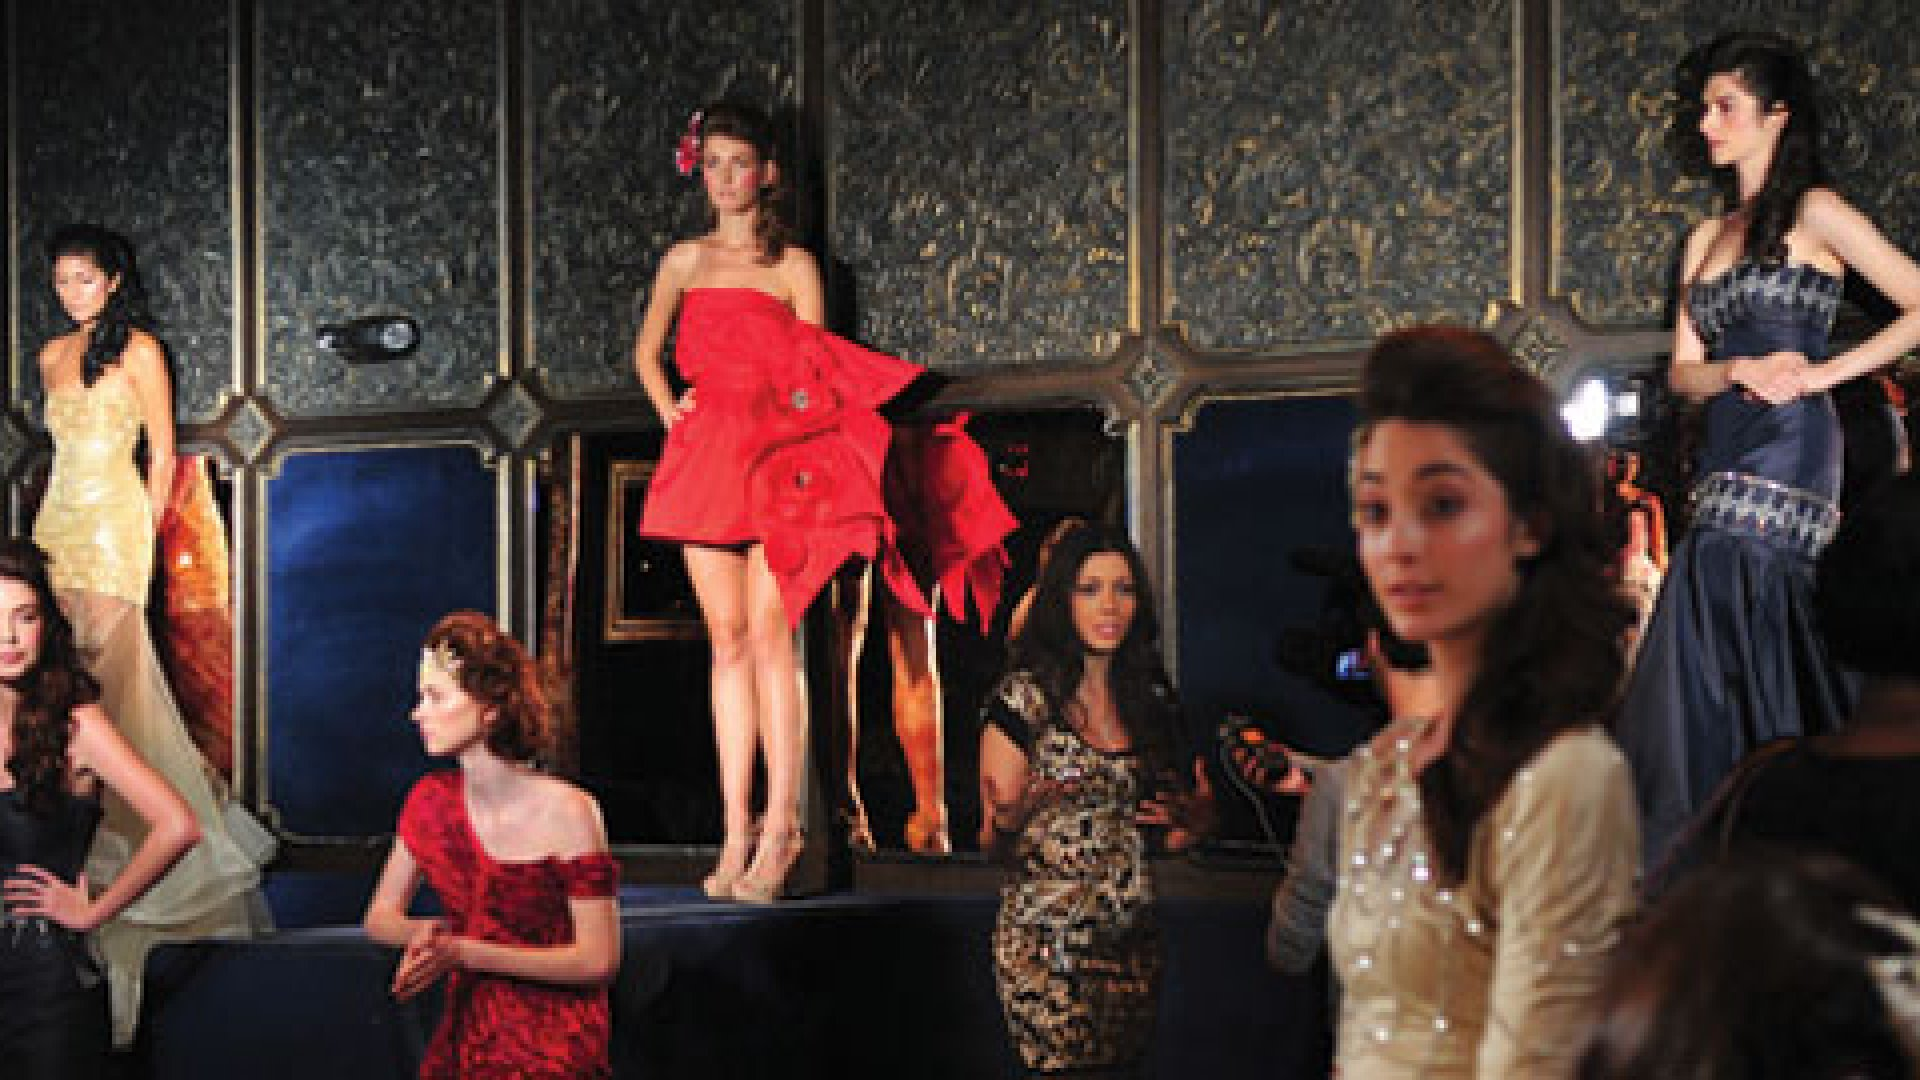 Designer and Project Runway winner Irina Shabayeva (right of girl in red) stands amongst her models during her Spring 2011 presentation for Fashion Week at The Griffin in New York City.